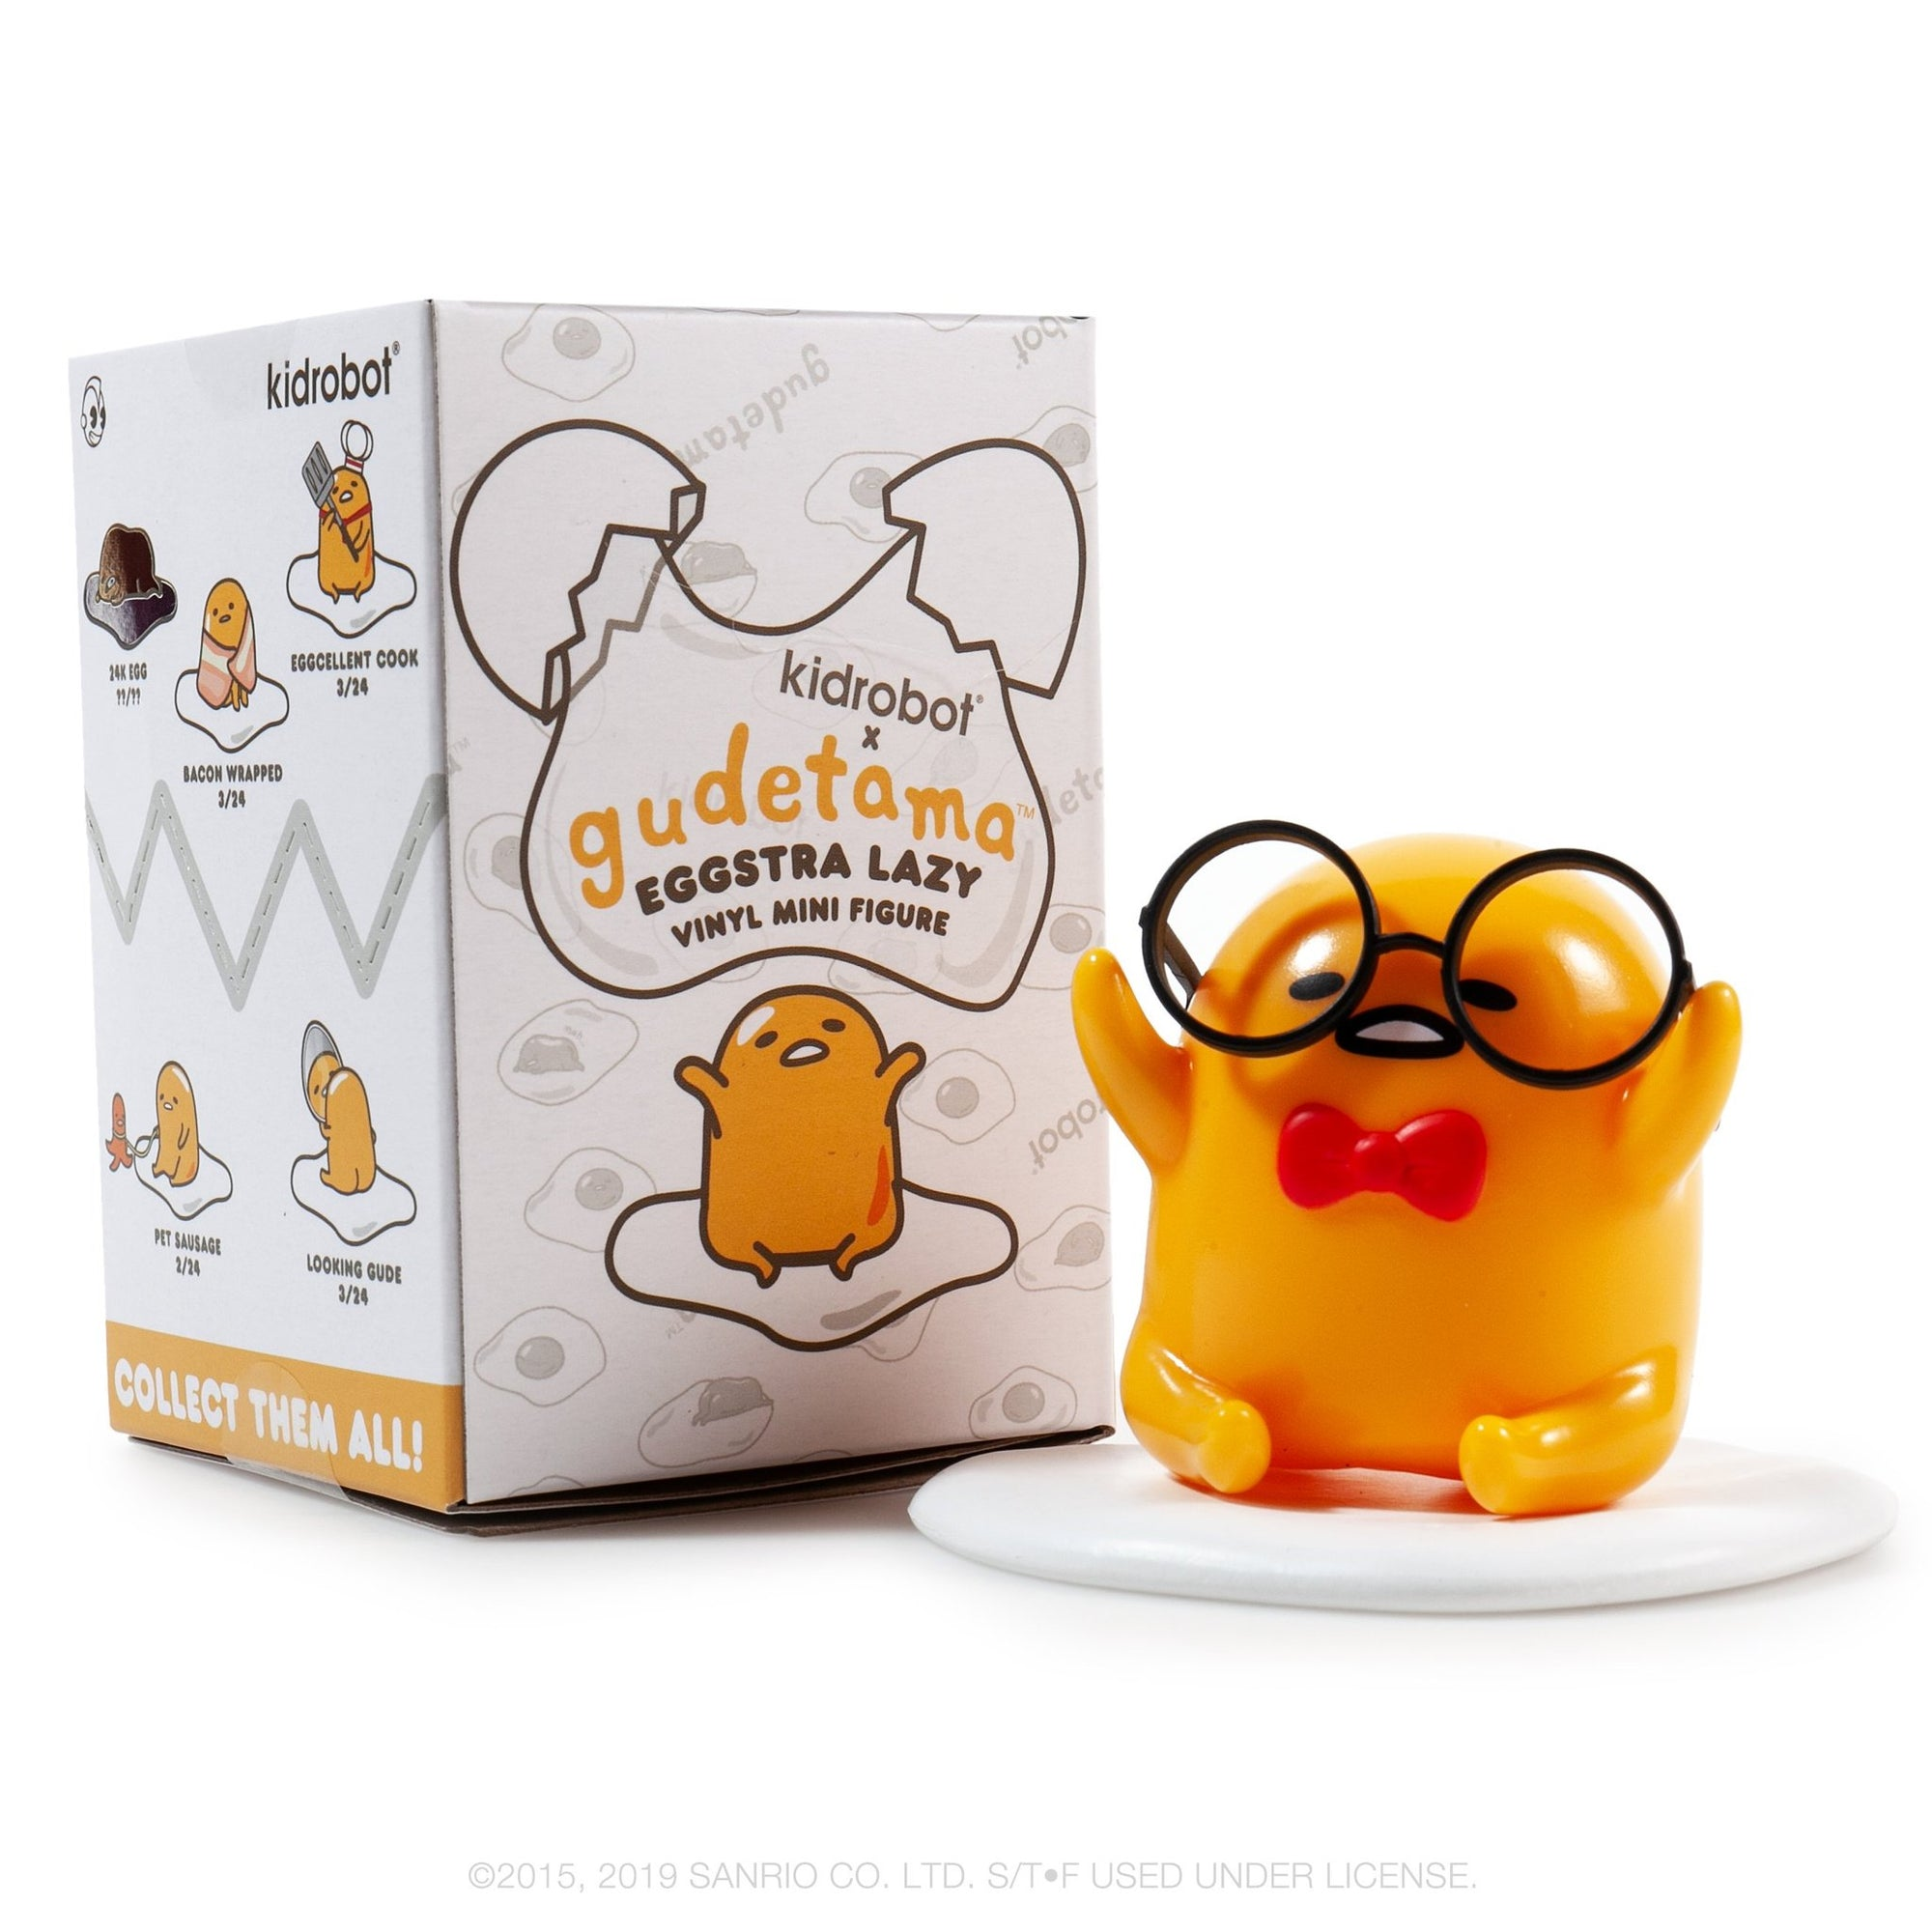 GUDETAMA EGGSTRA LAZY VINYL MINI FIGURE SERIES BY KIDROBOT